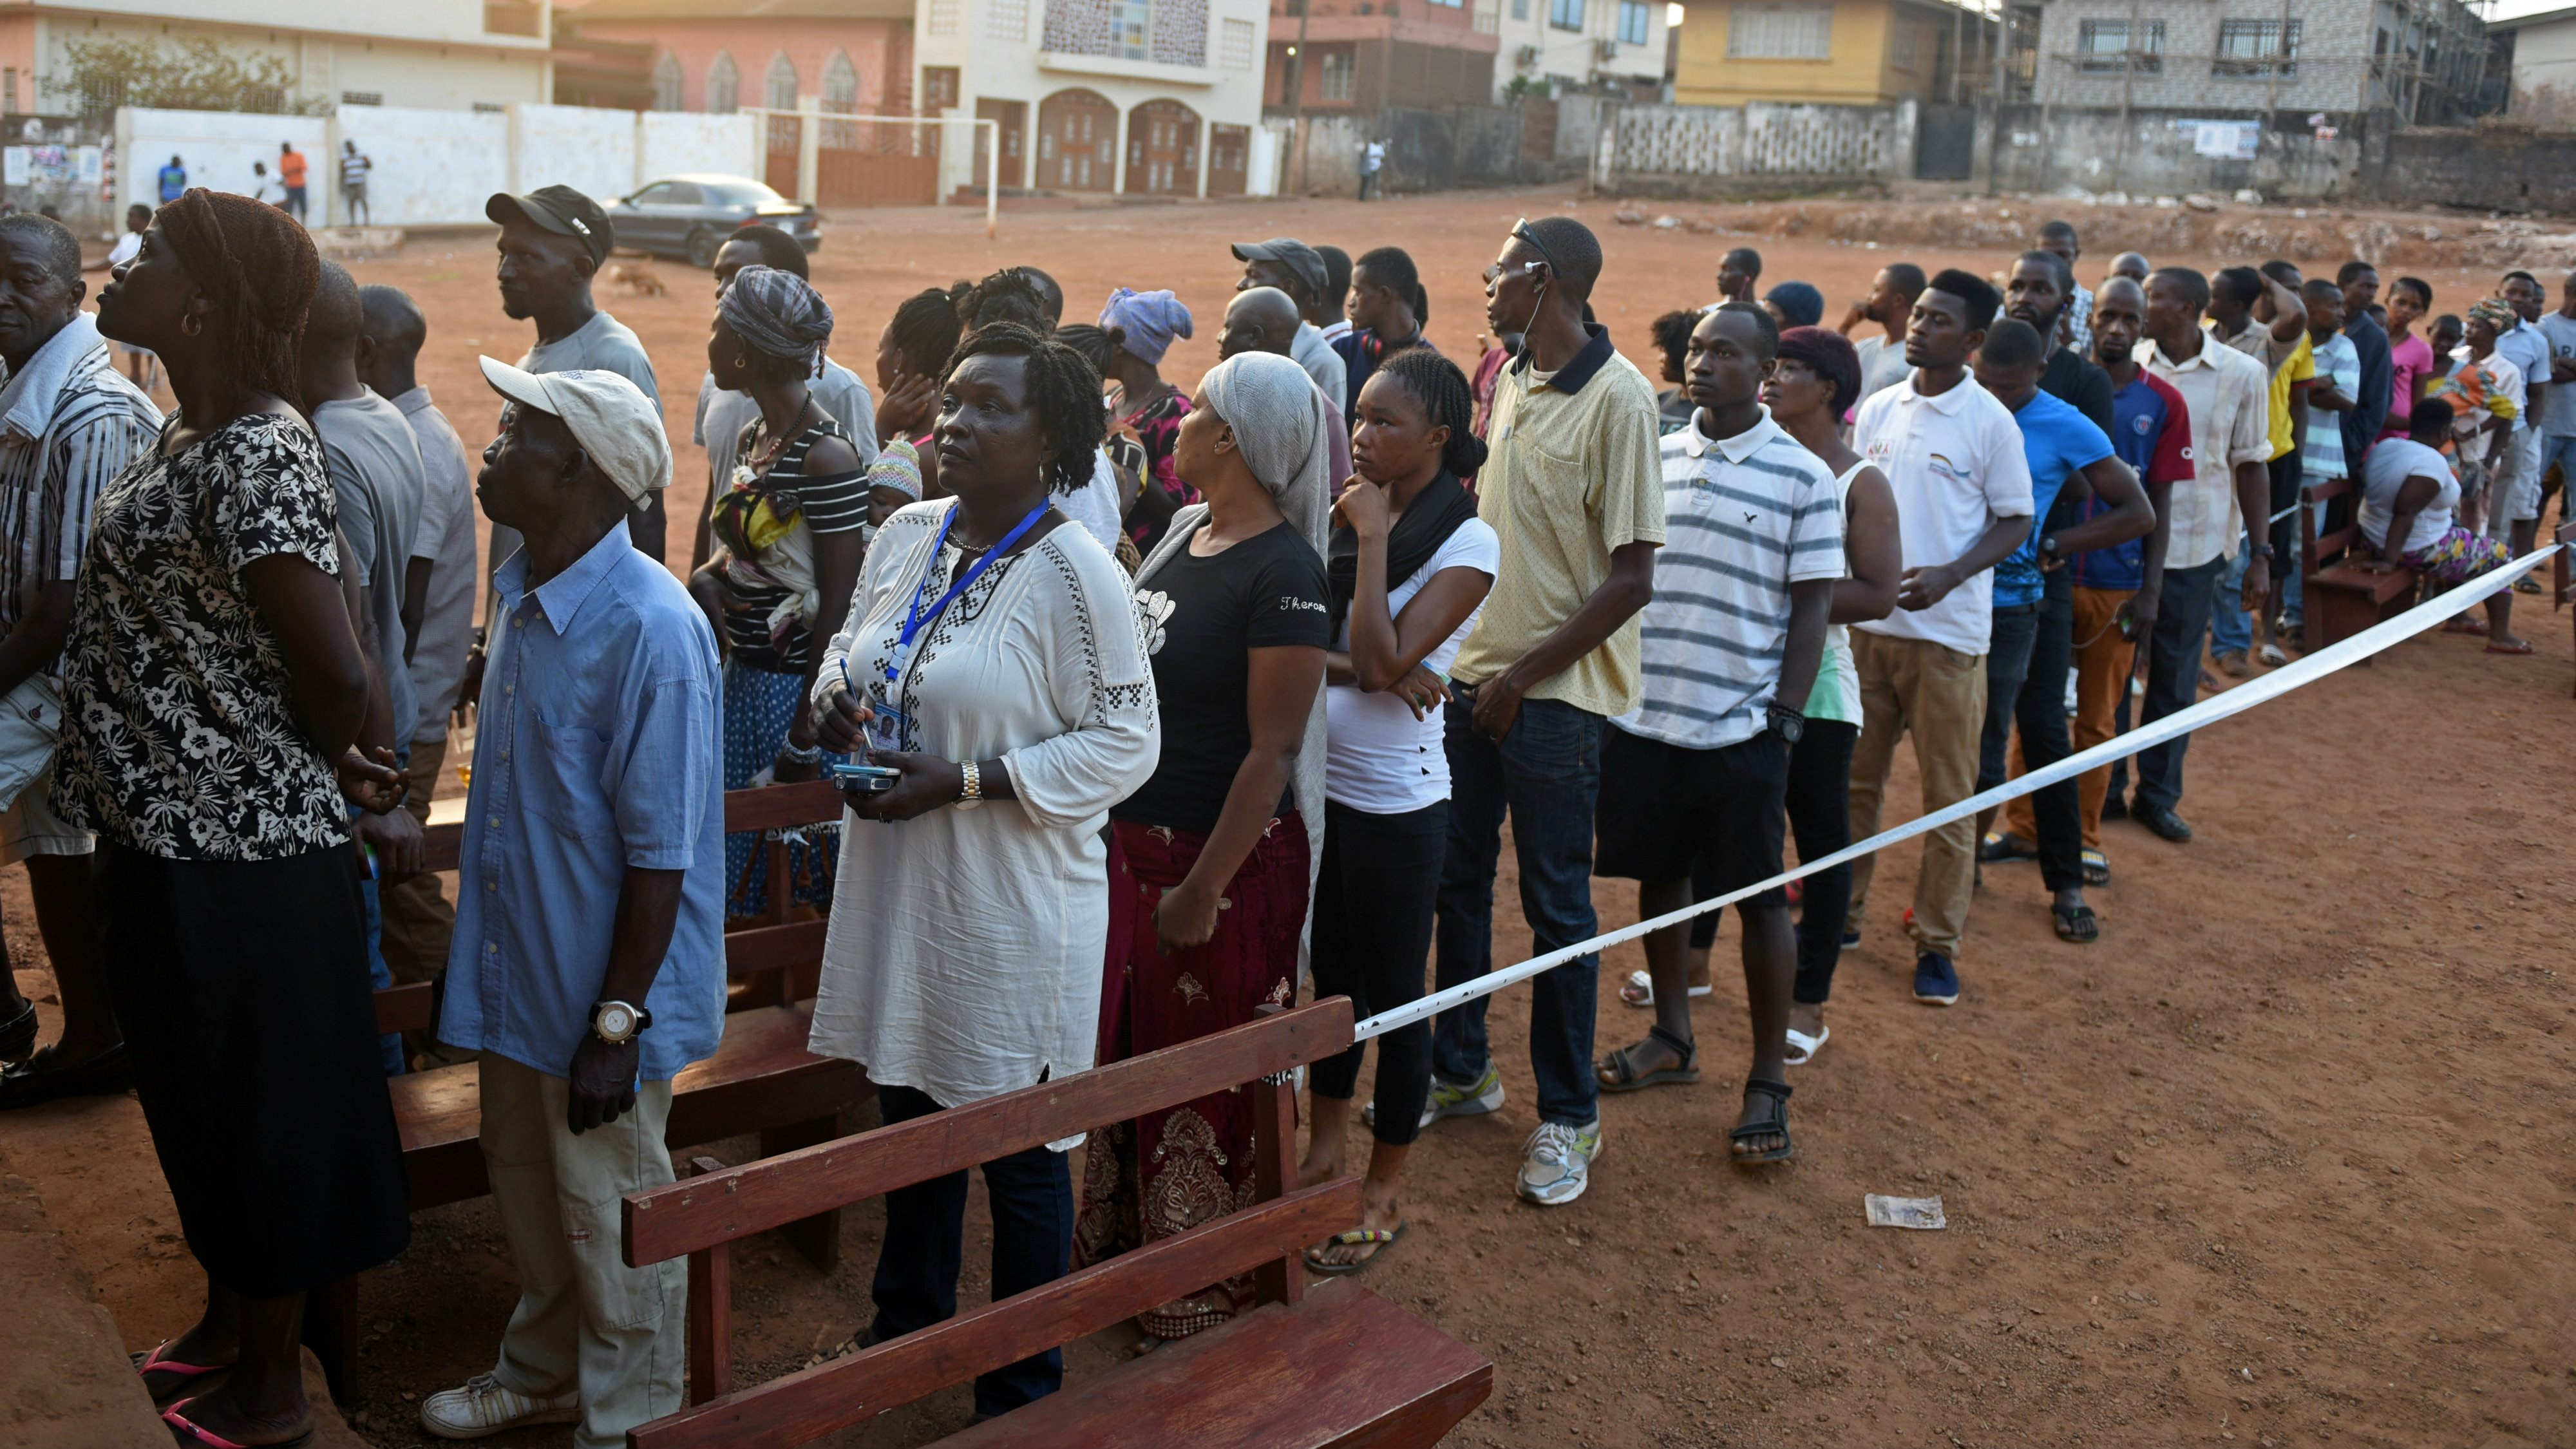 People queue to cast their vote at a polling station during Sierra Leone's presidential election in Freetown, Sierra Leone March 7, 2018.